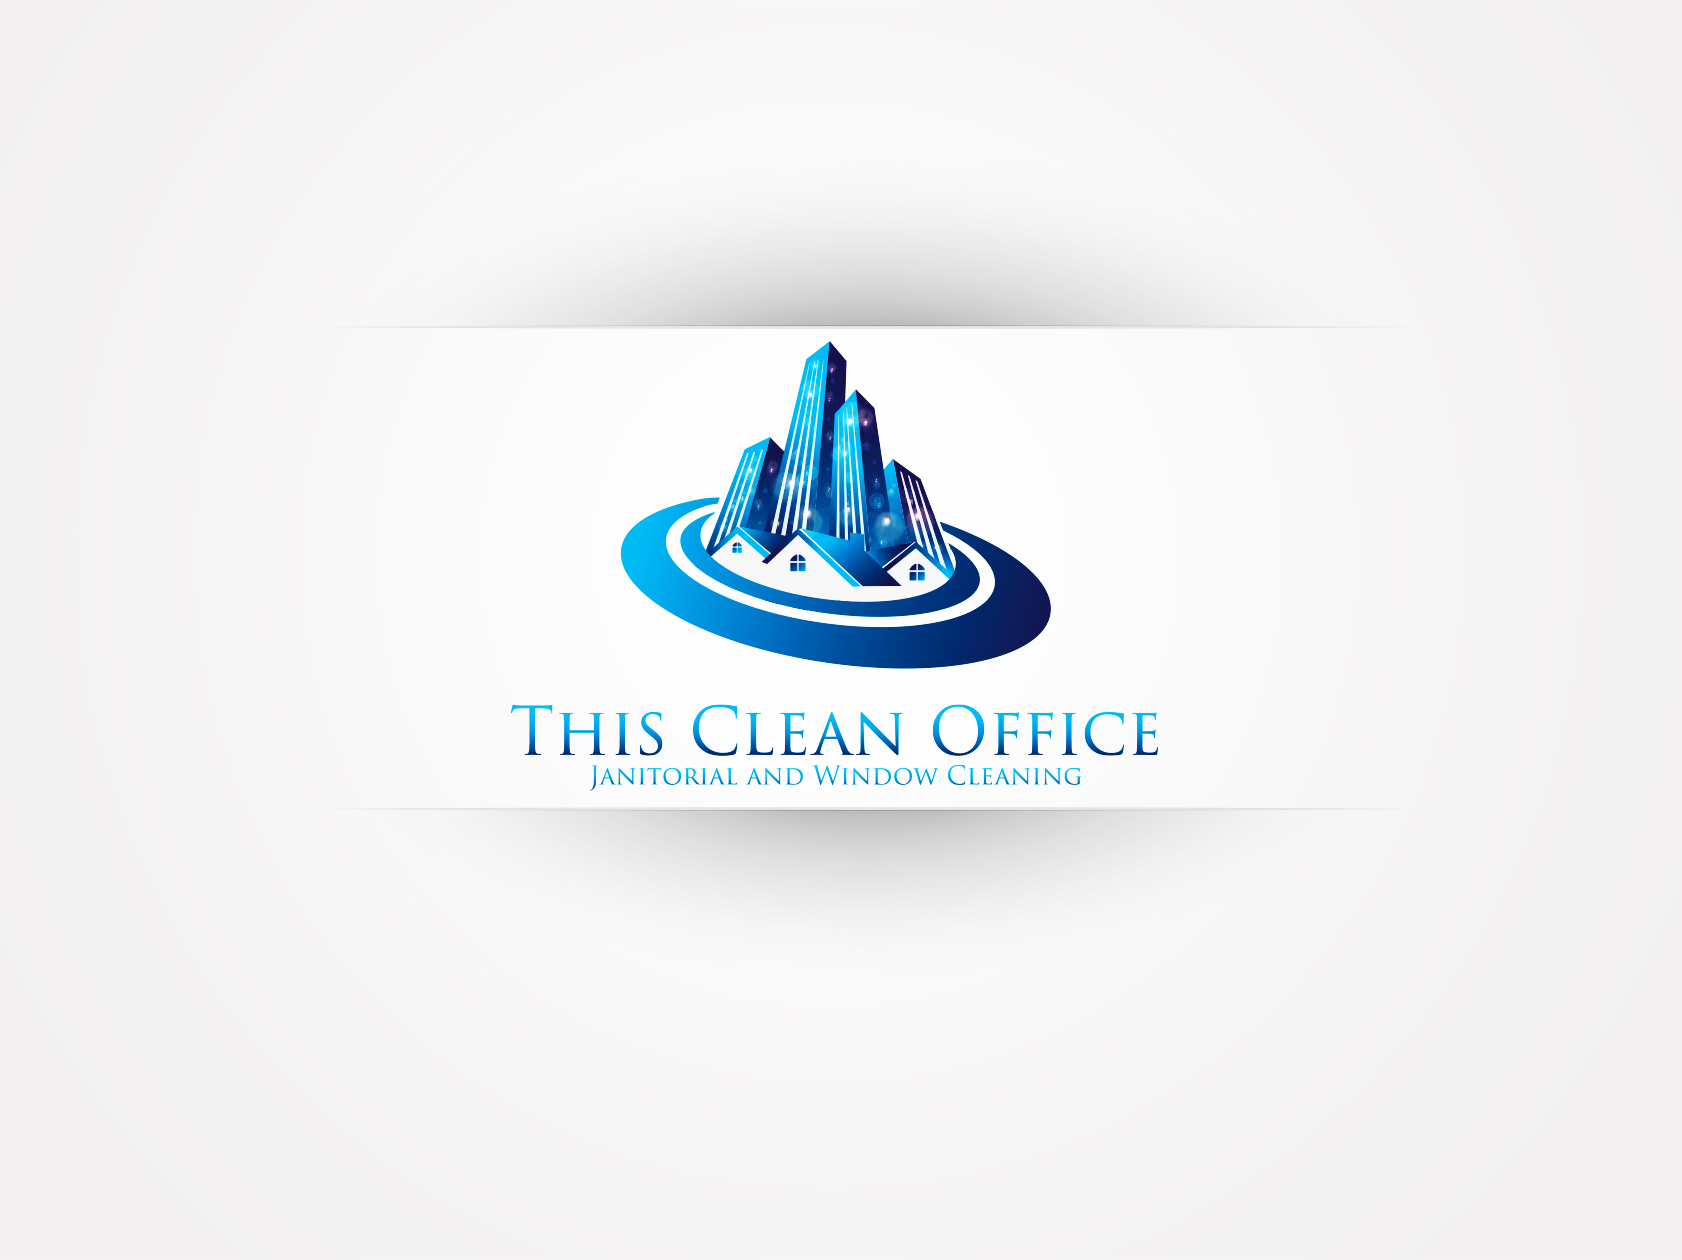 Logo Design by OmegaDesigns - Entry No. 55 in the Logo Design Contest Professional and Unforgettable Logo Design for This Clean Office.